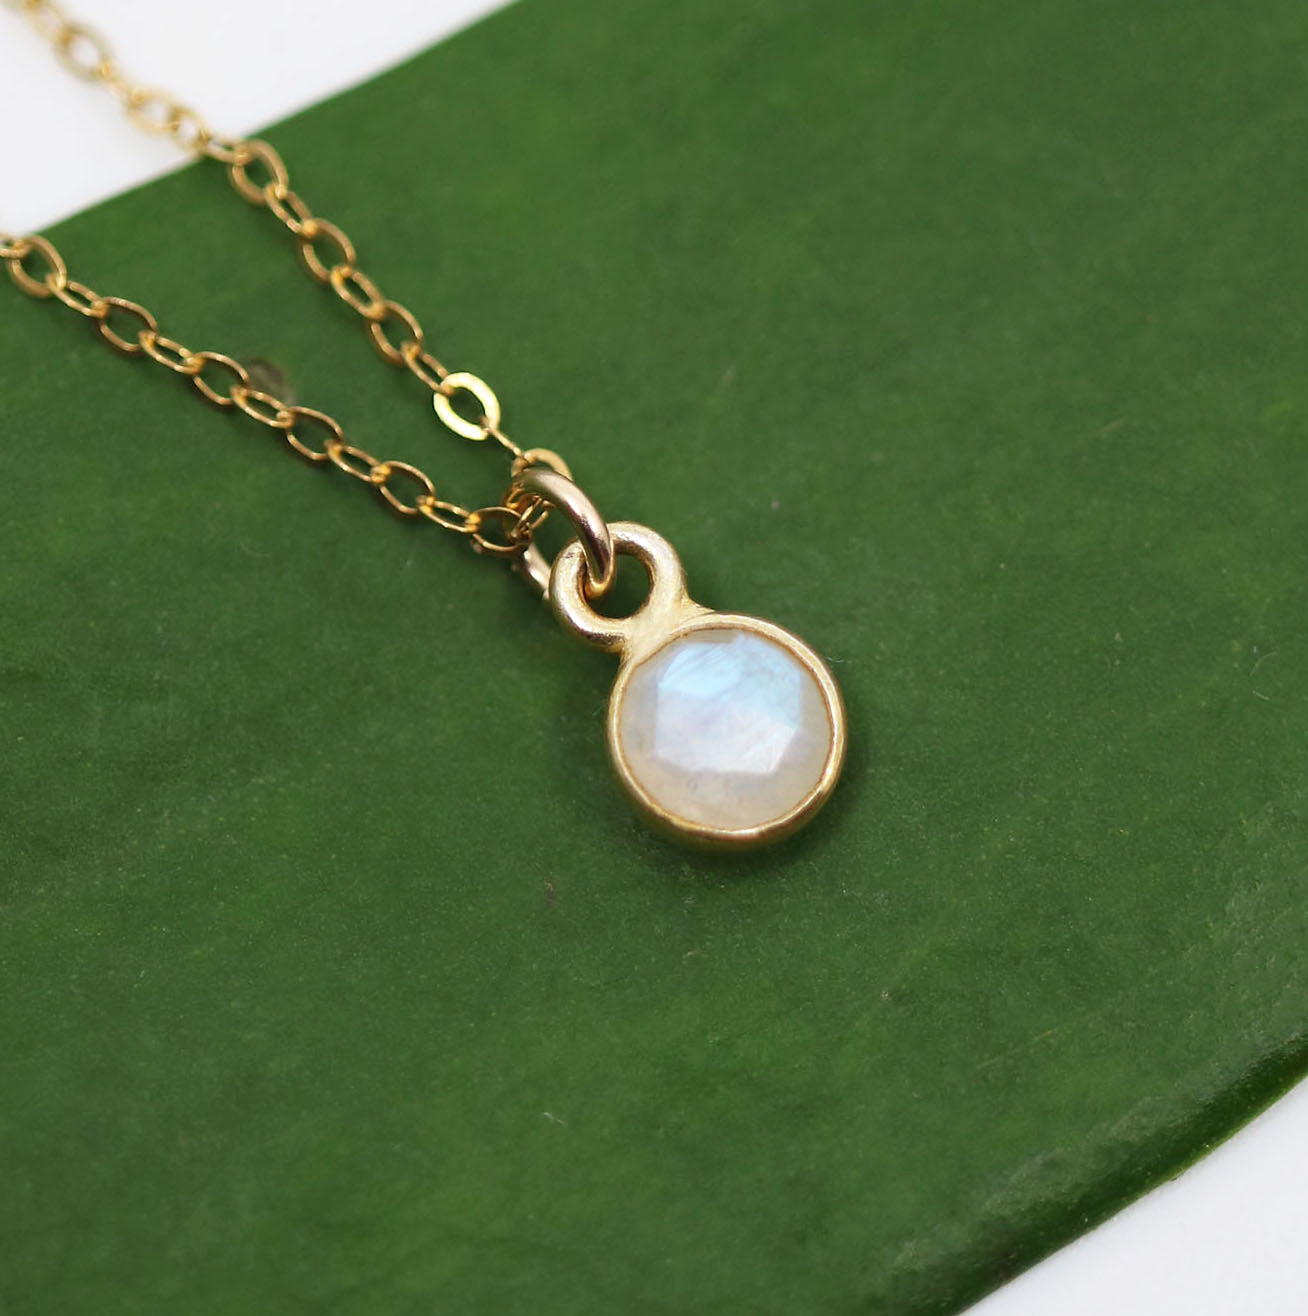 Gem of the Month: MOONSTONE